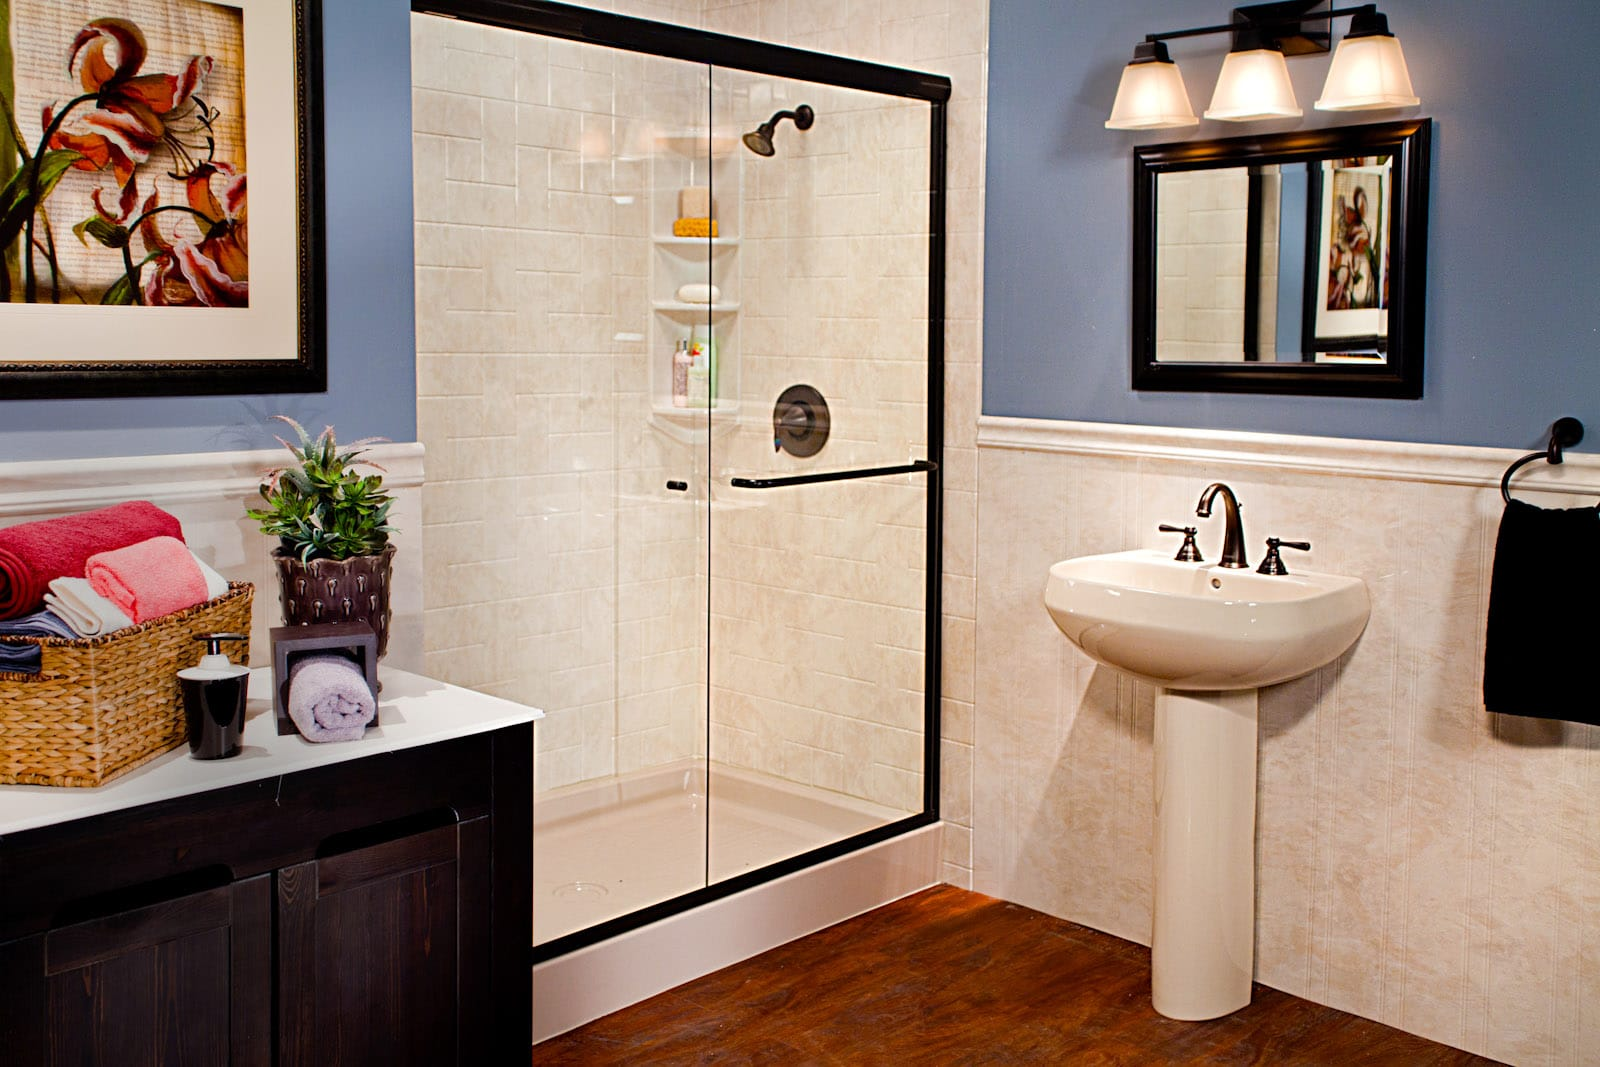 South Florida Shower Replacement - Bathrooms Plus Inc (23)